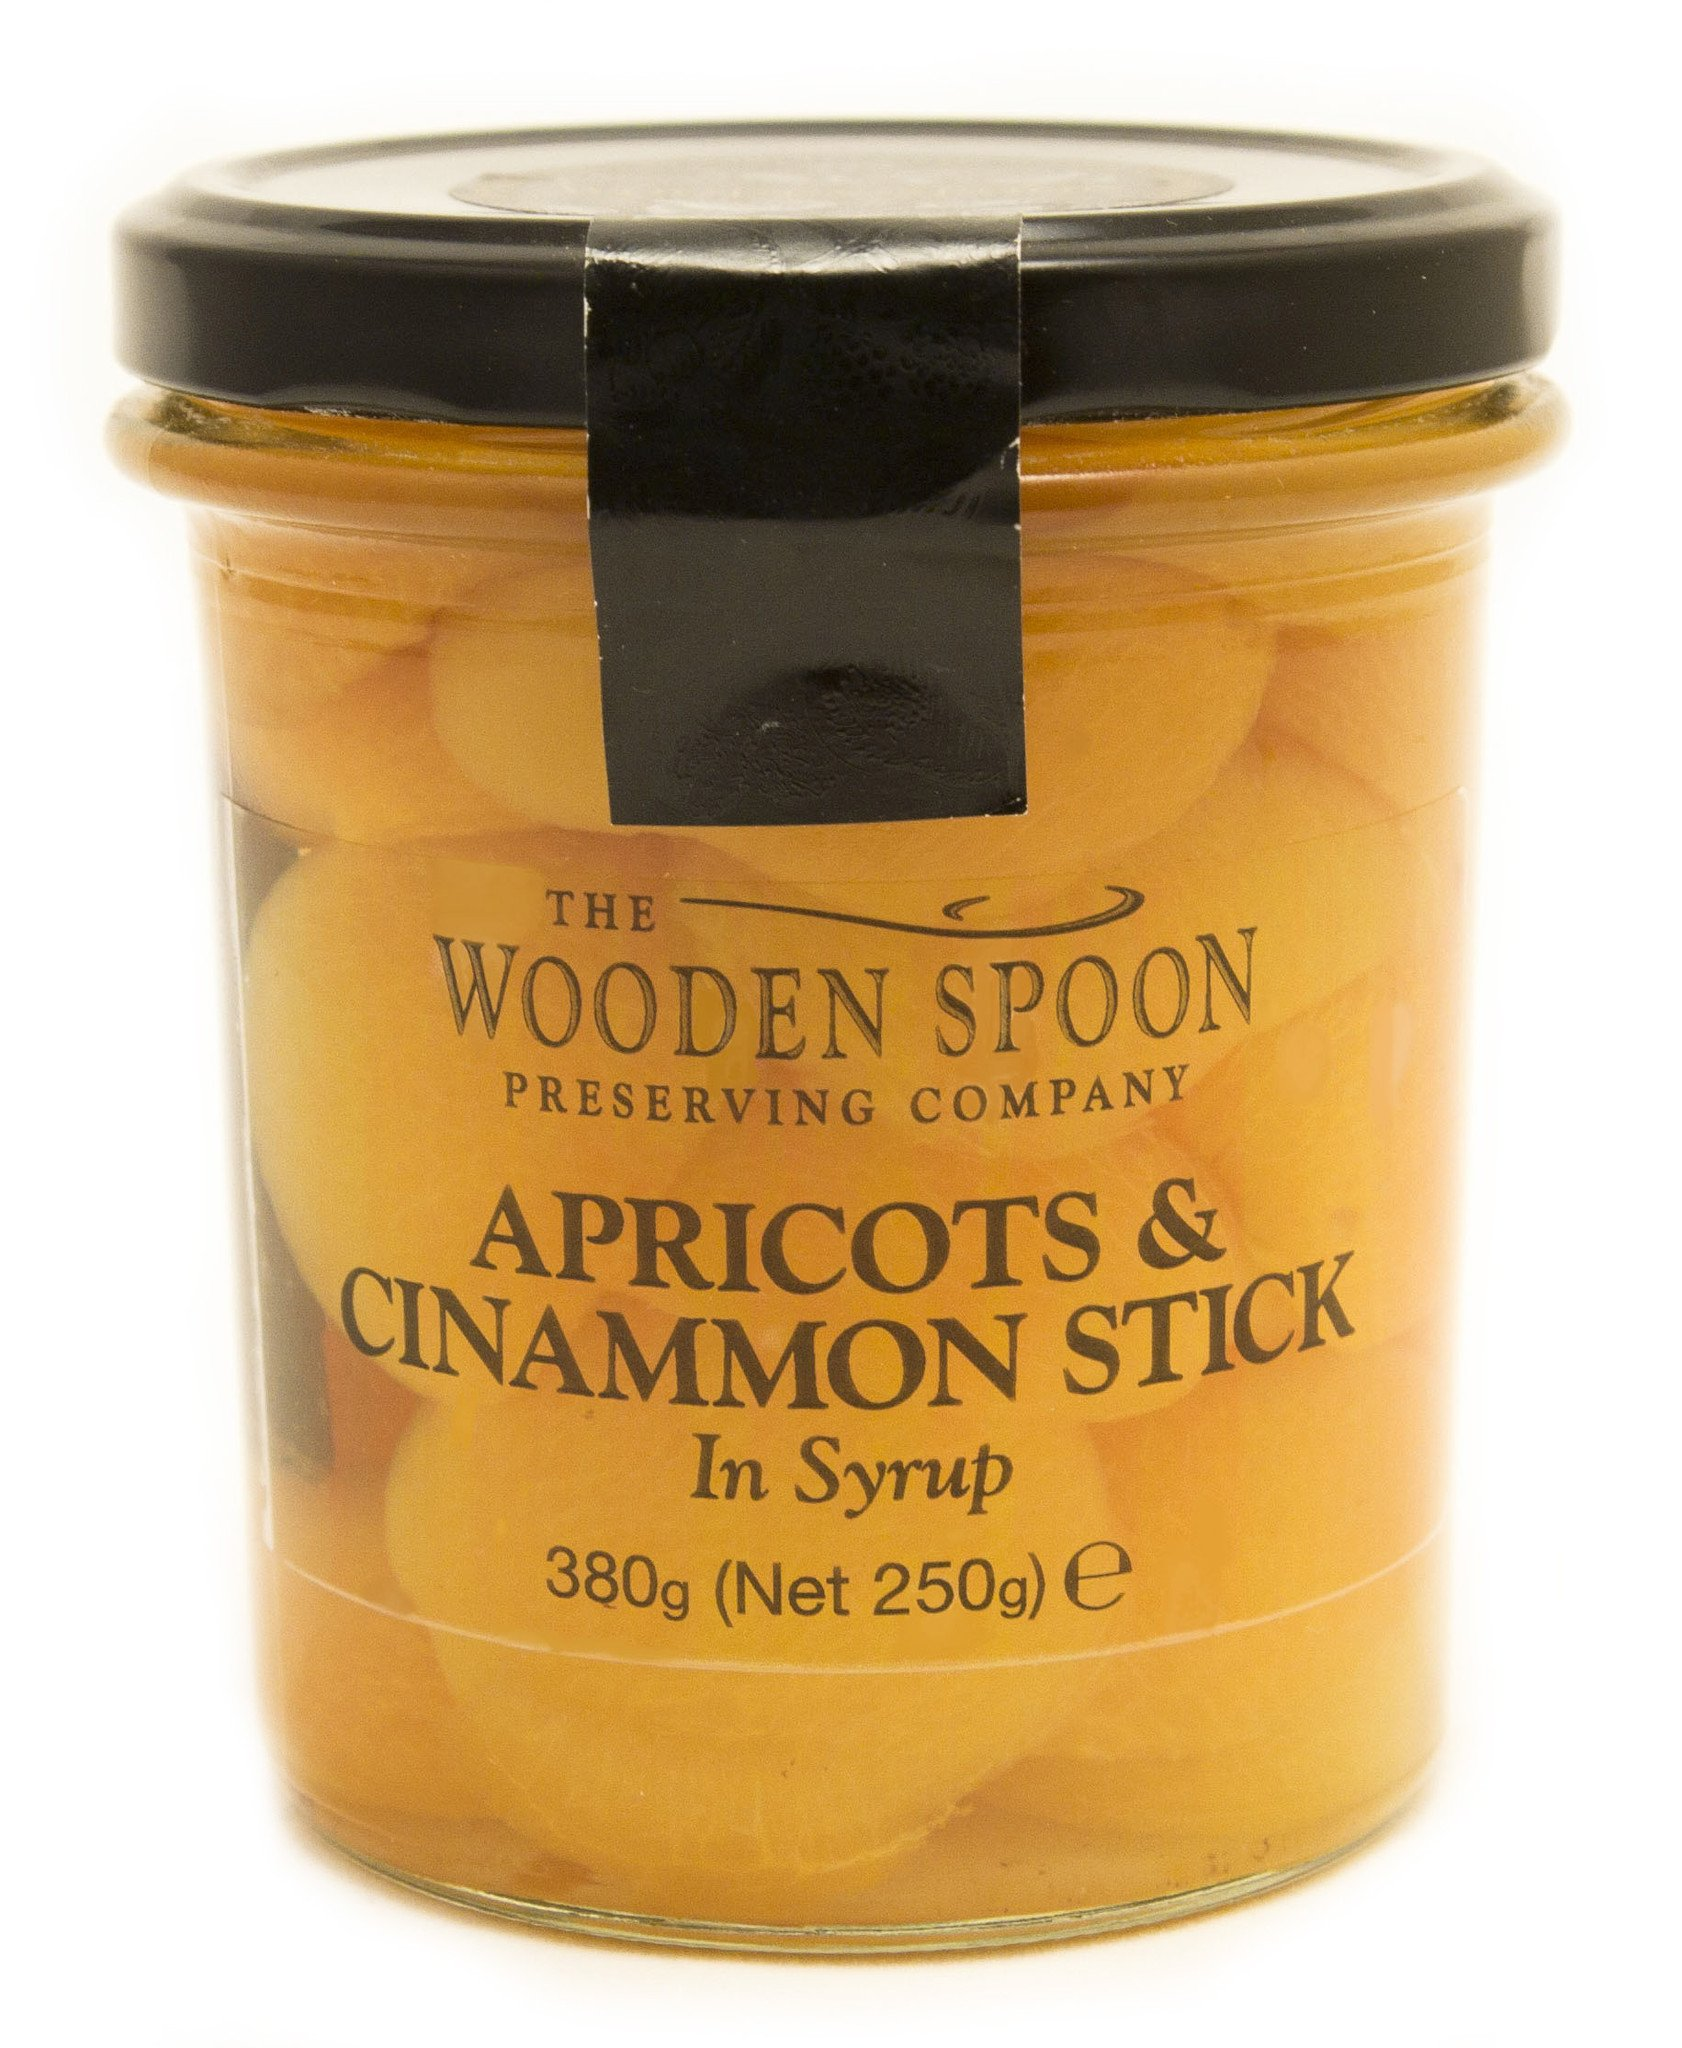 Apricots & Cinnamon Stick- no alcohol